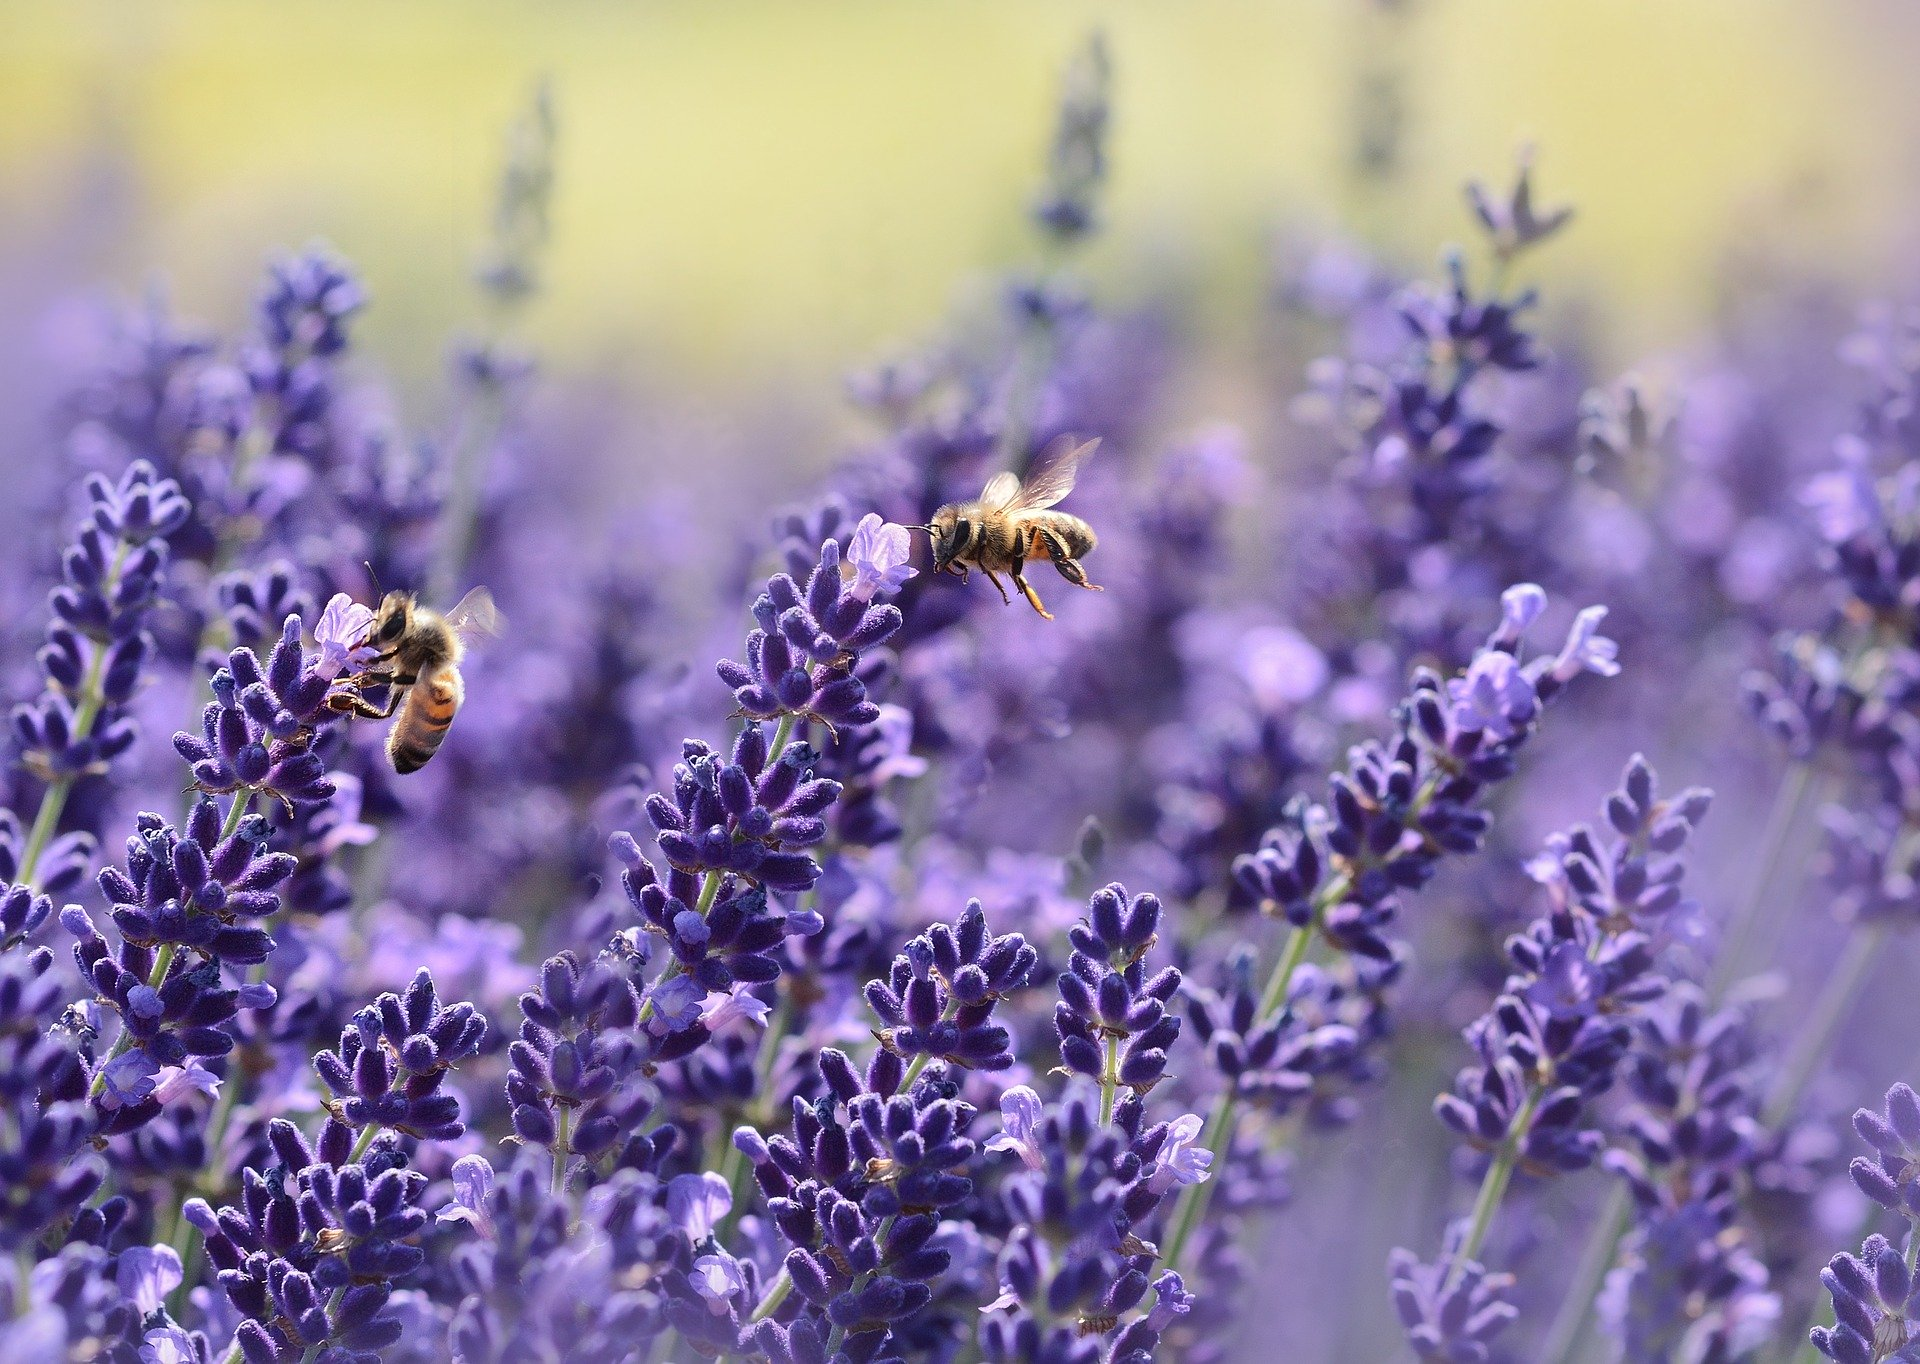 bees flying over lavender-preparing retirement budget